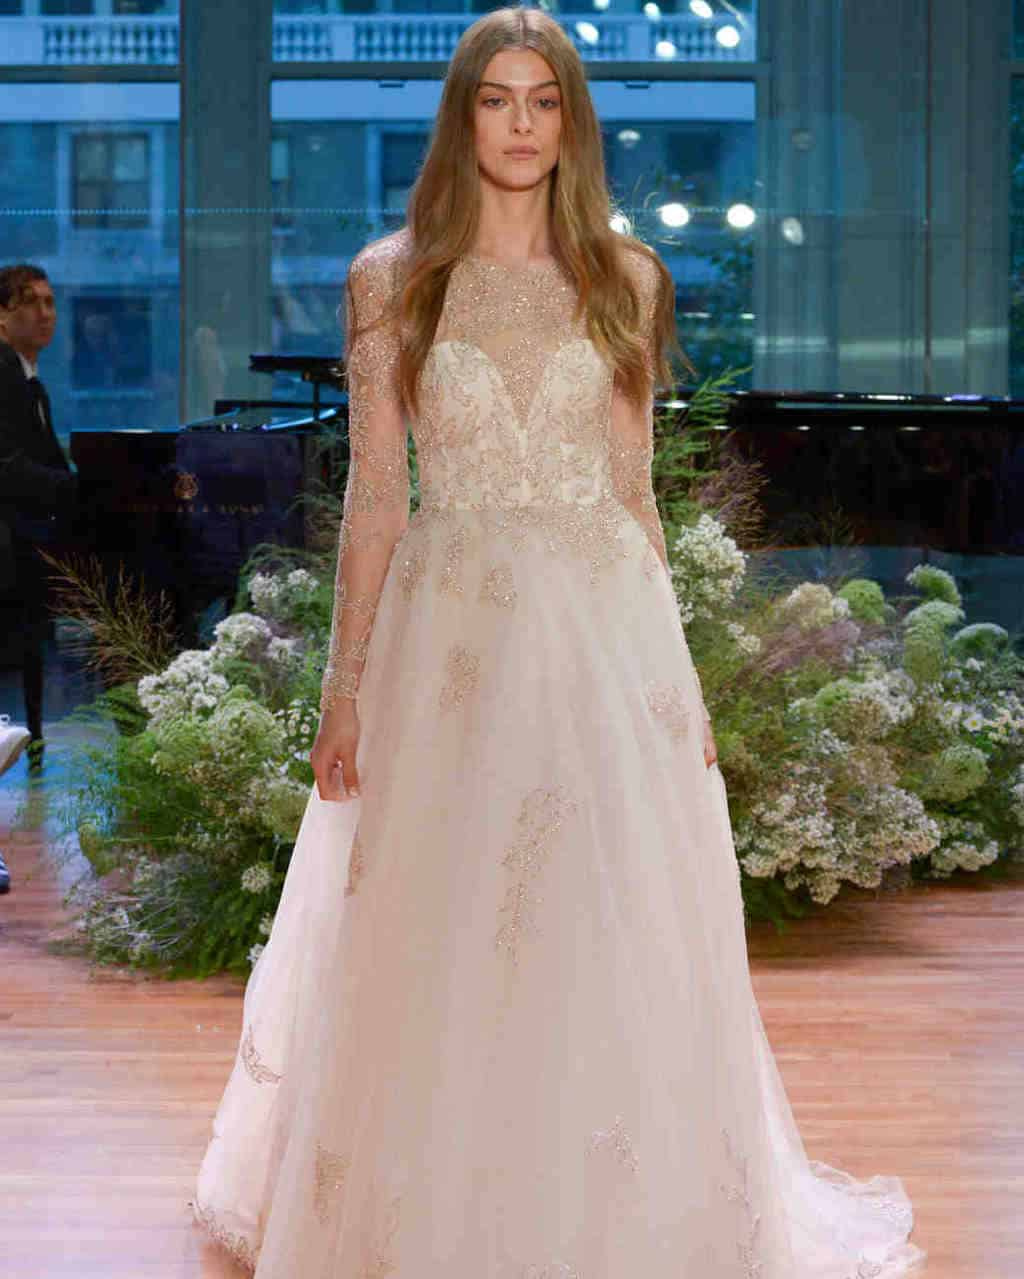 vestido-de-noiva-rose-quartz-Monique-Lhuillier-wedding-dress-fall2017-62033510-005_vert